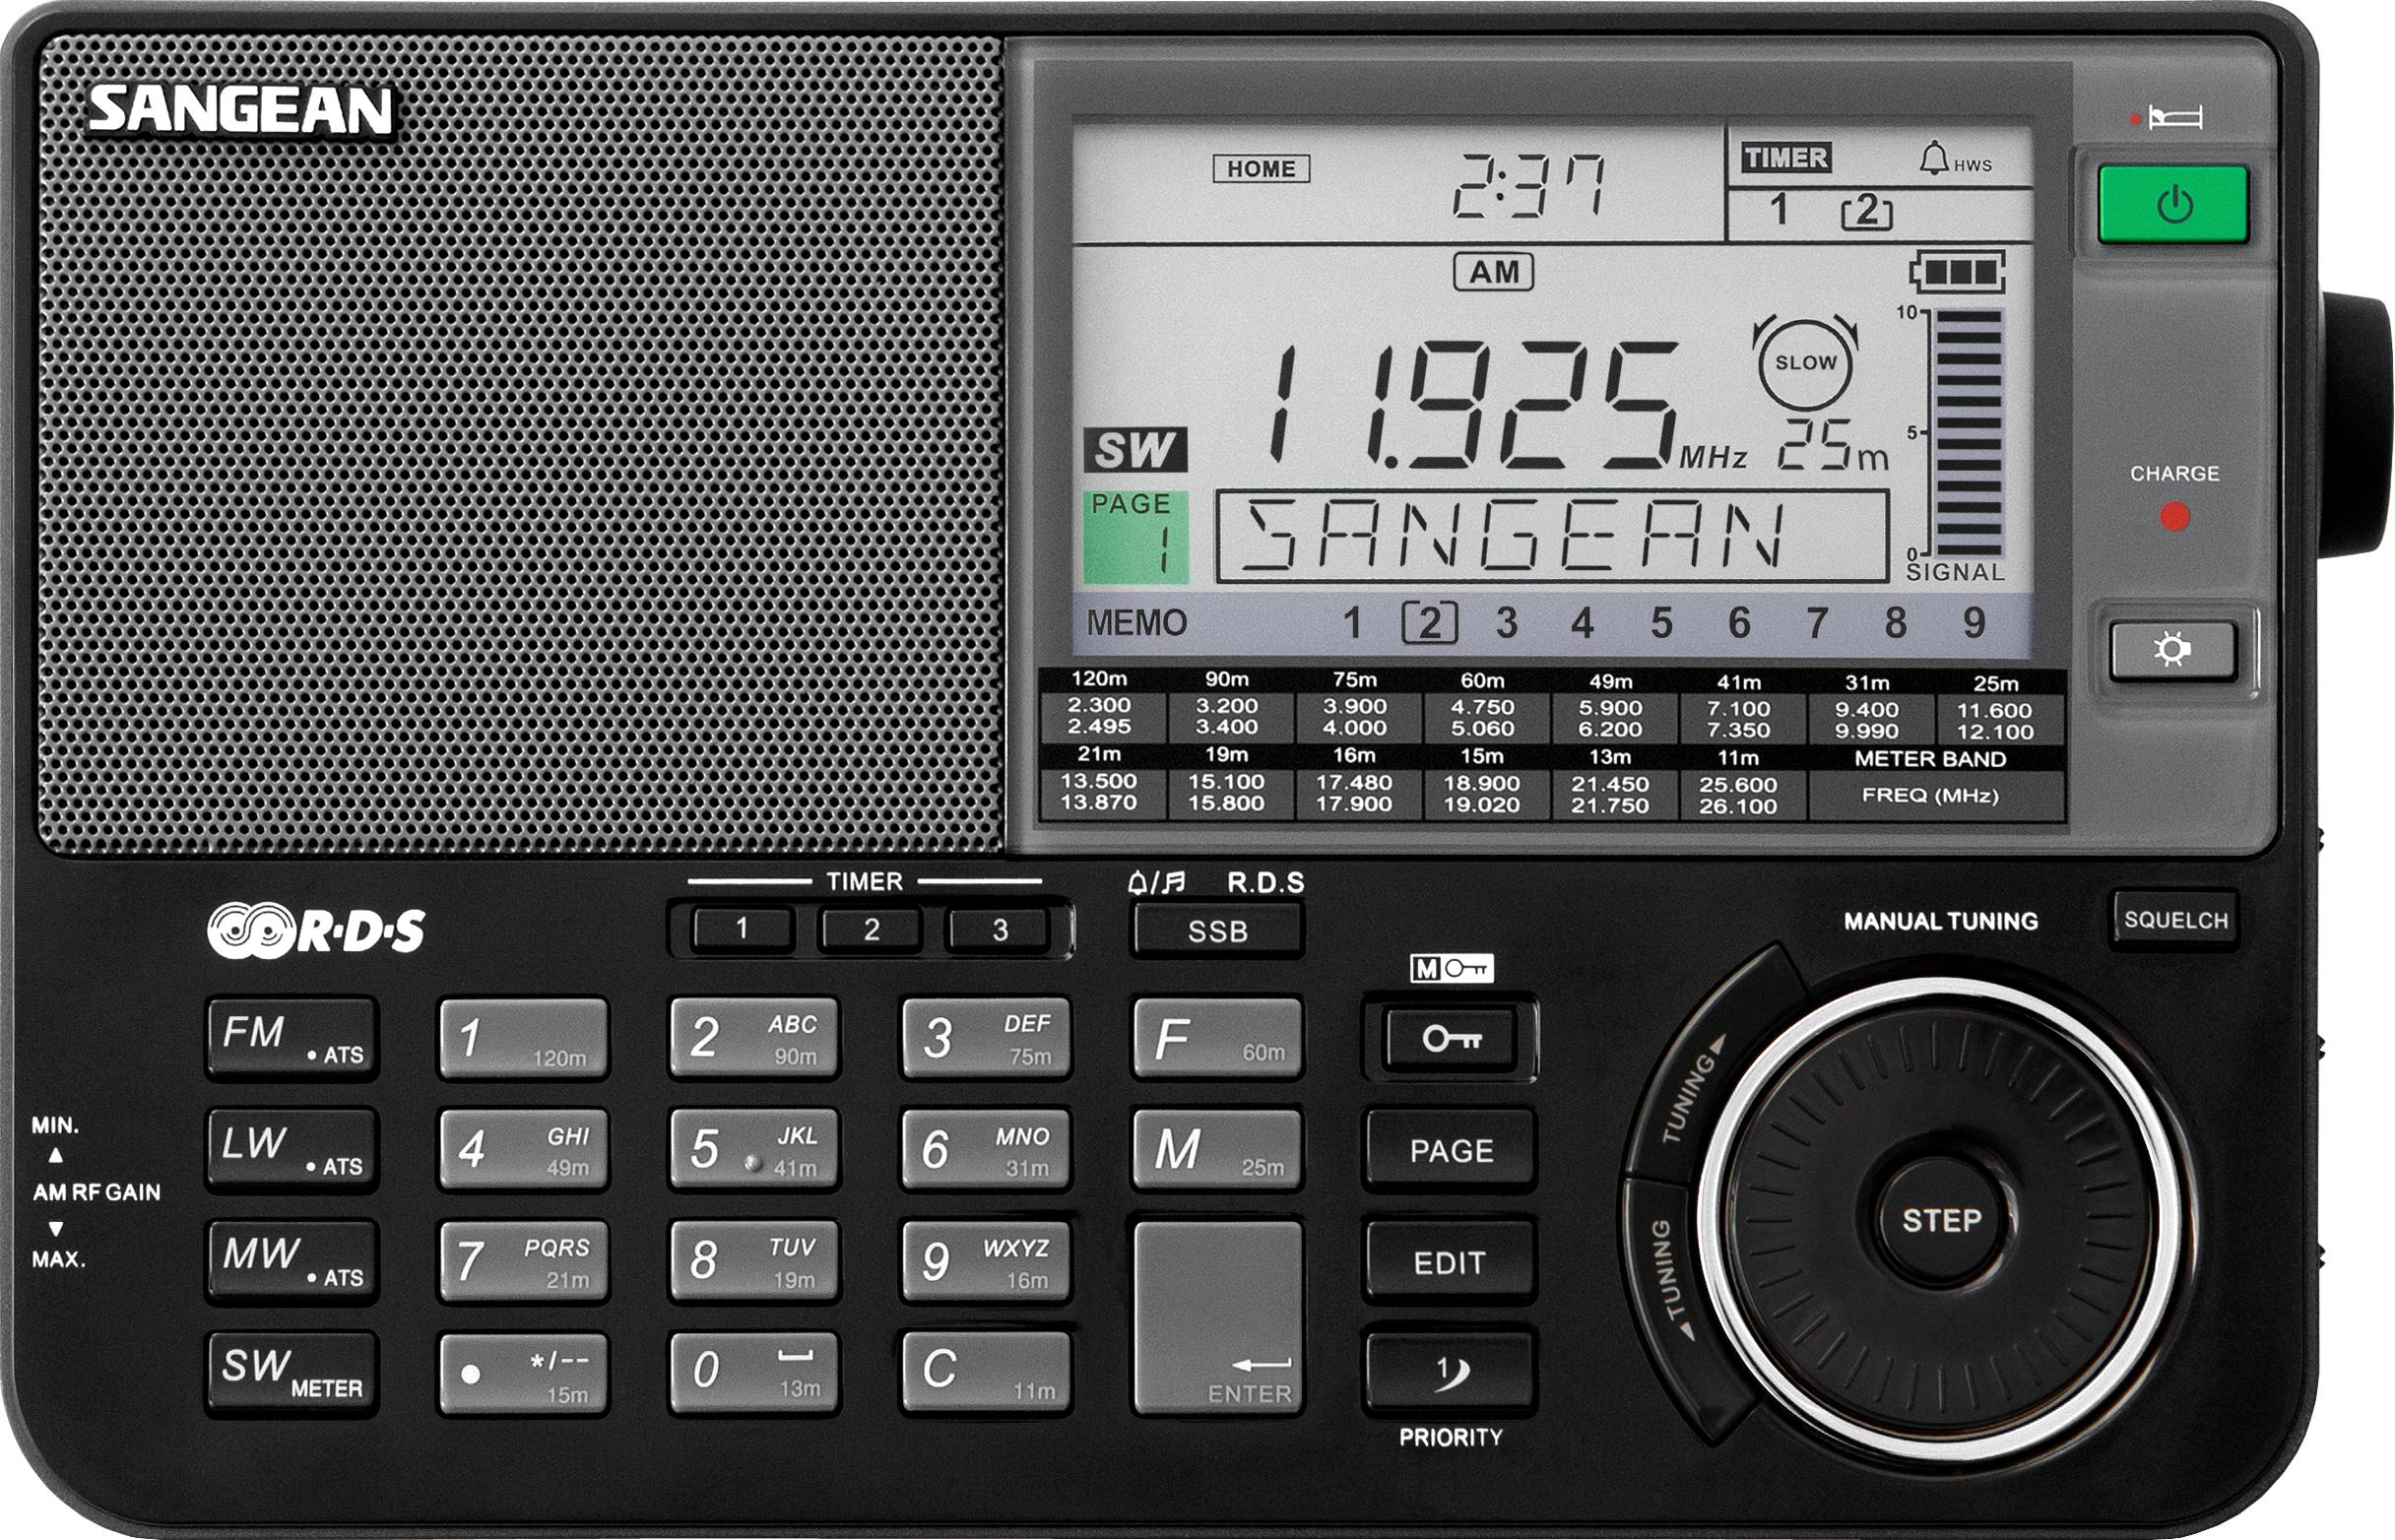 Sangean Ats 909x Am Fm Lw Sw World Band Receiver Home Voice Transmitter Via Medium Wave Rbds Mw Portable Pll Synthesized Radio